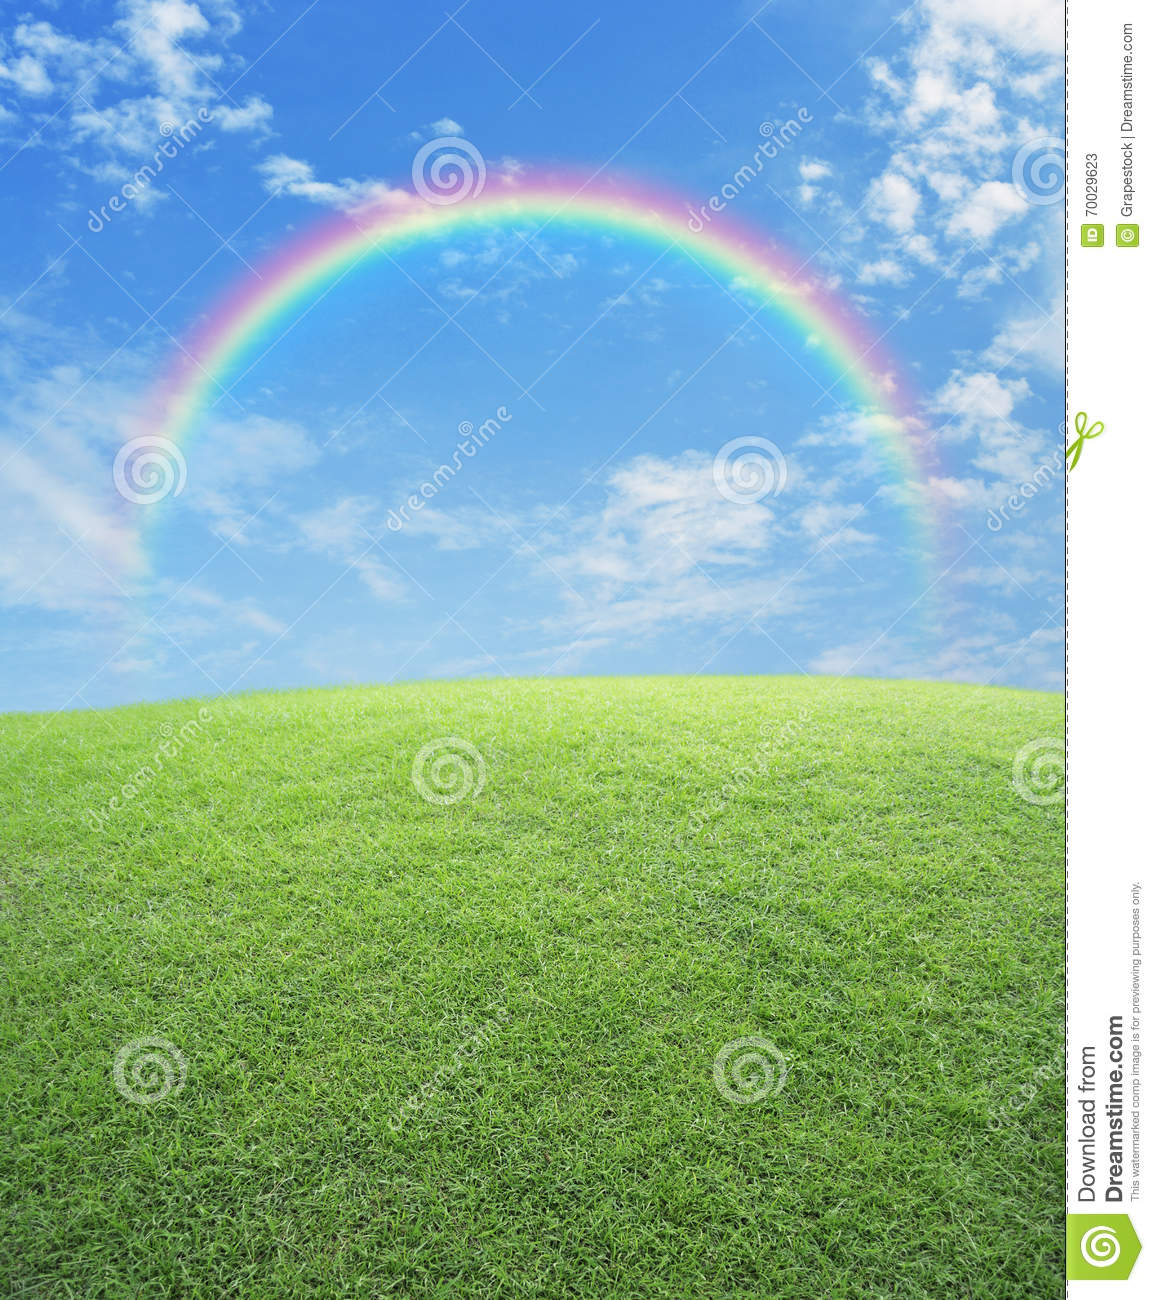 rainbow with green grass field over blue sky stock image - image of